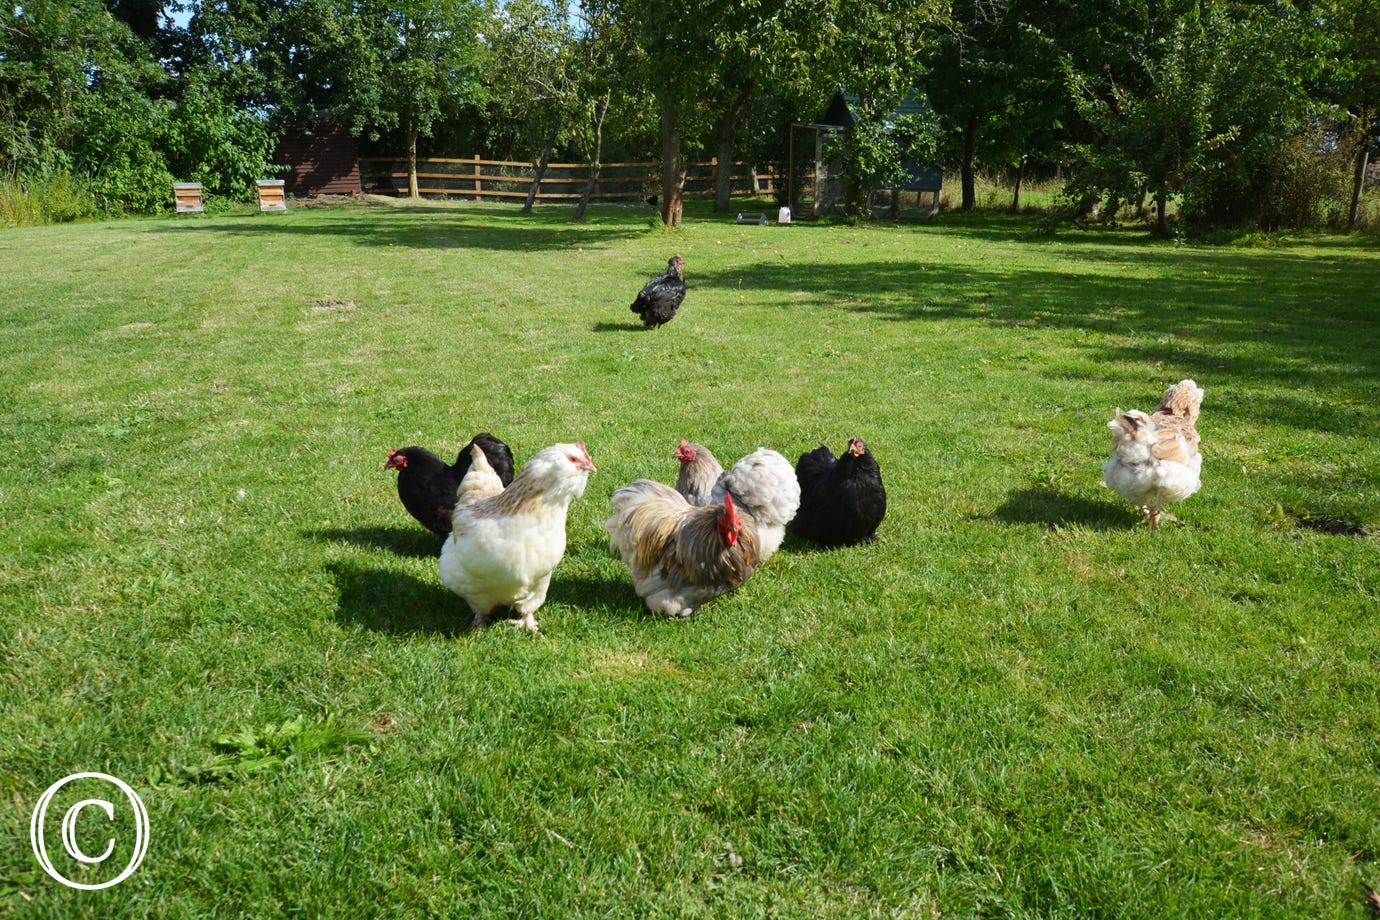 The owners friendly chickens